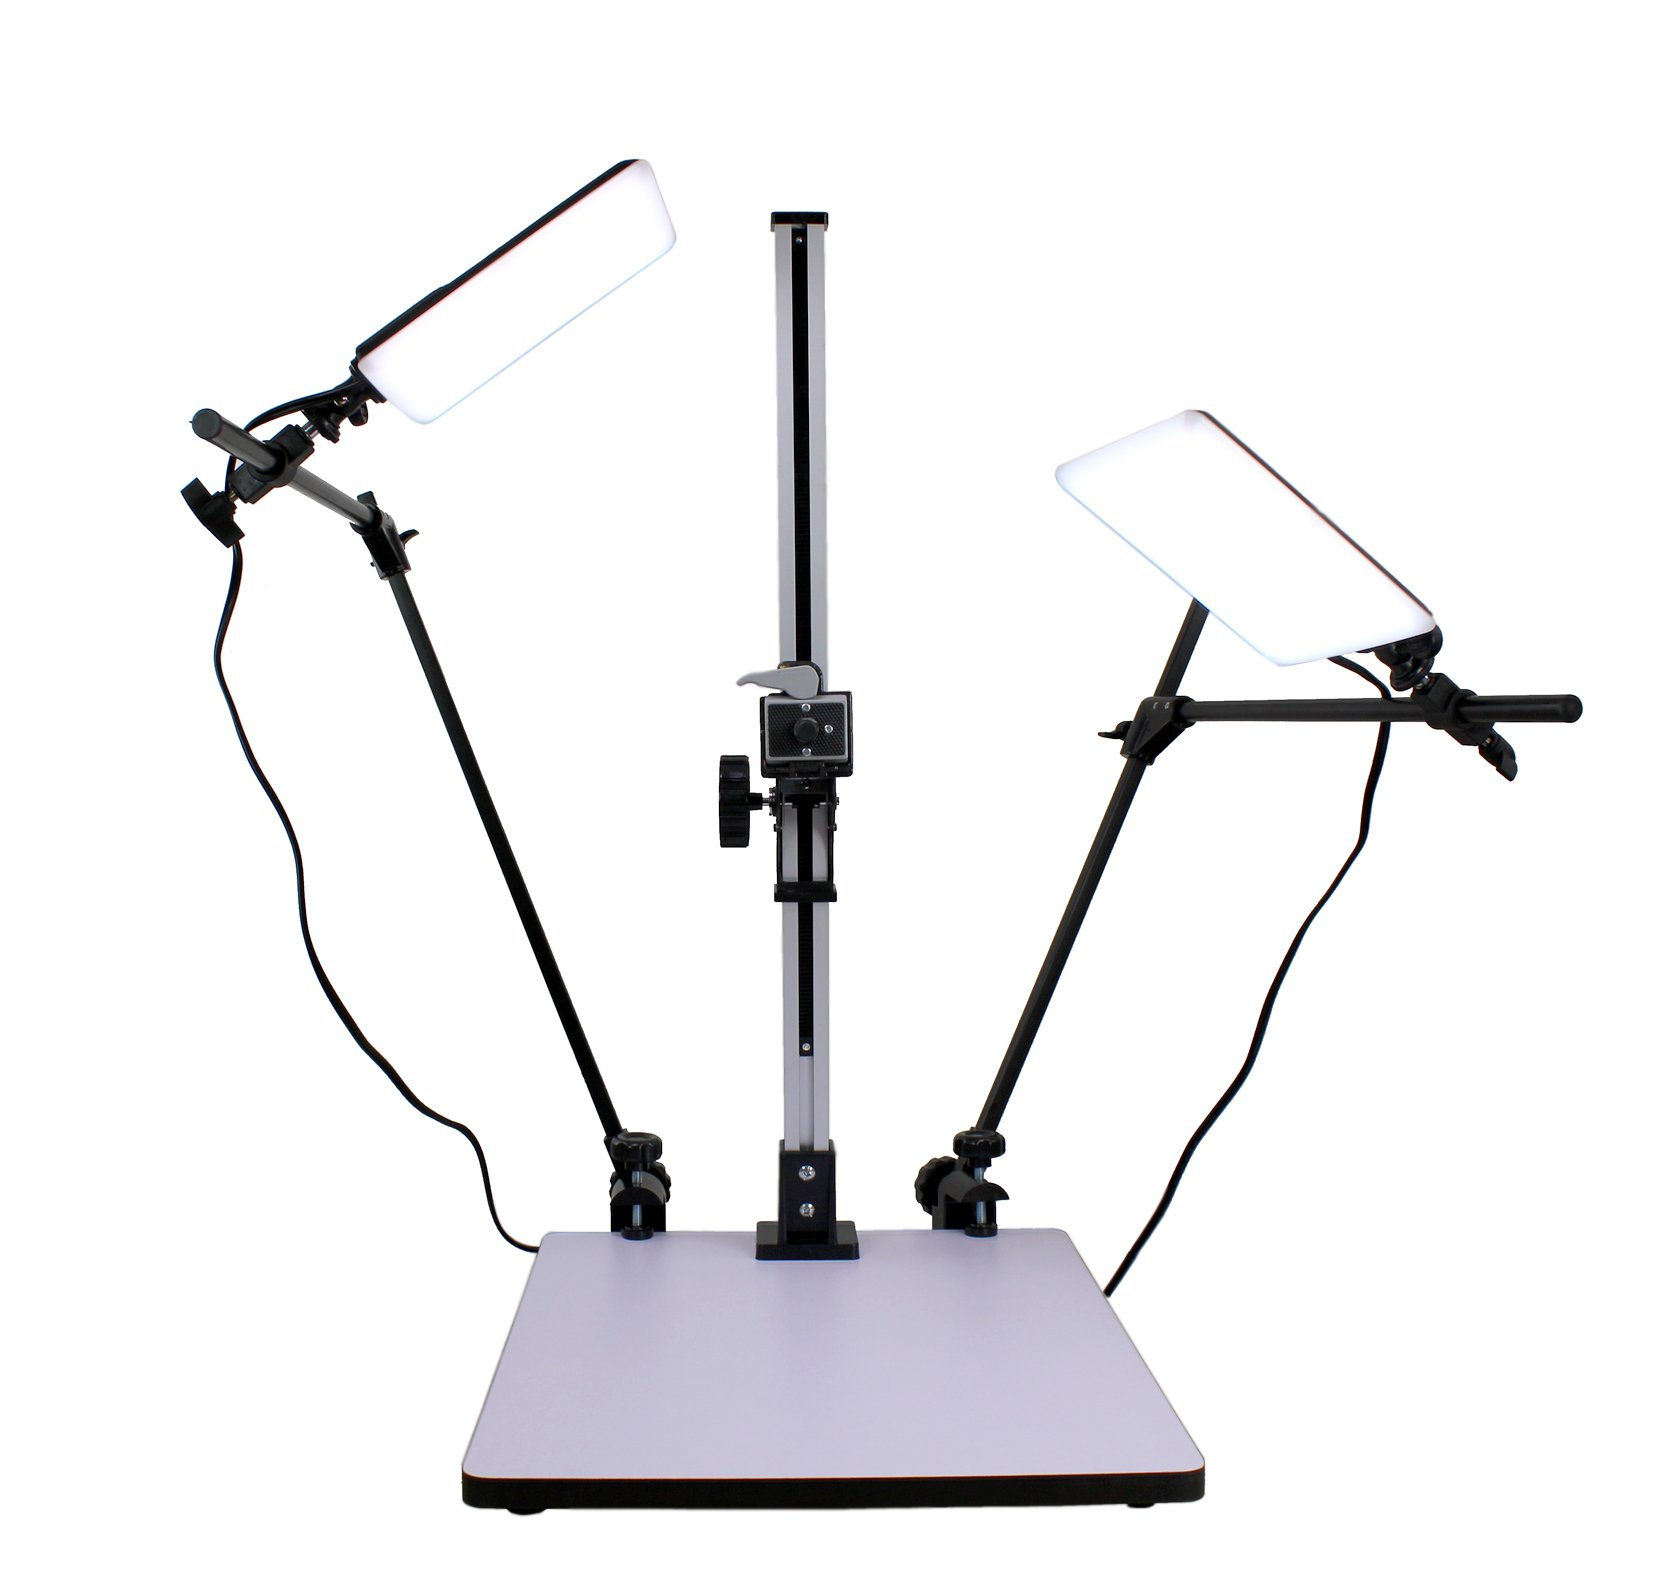 Albinar High Load 28 inch Copy Macro Stand with 15.75 inch x 19 inch Base, Quick Release Mount and Two Daylight Spectrum 5600K 16W LED Lights by Albinar